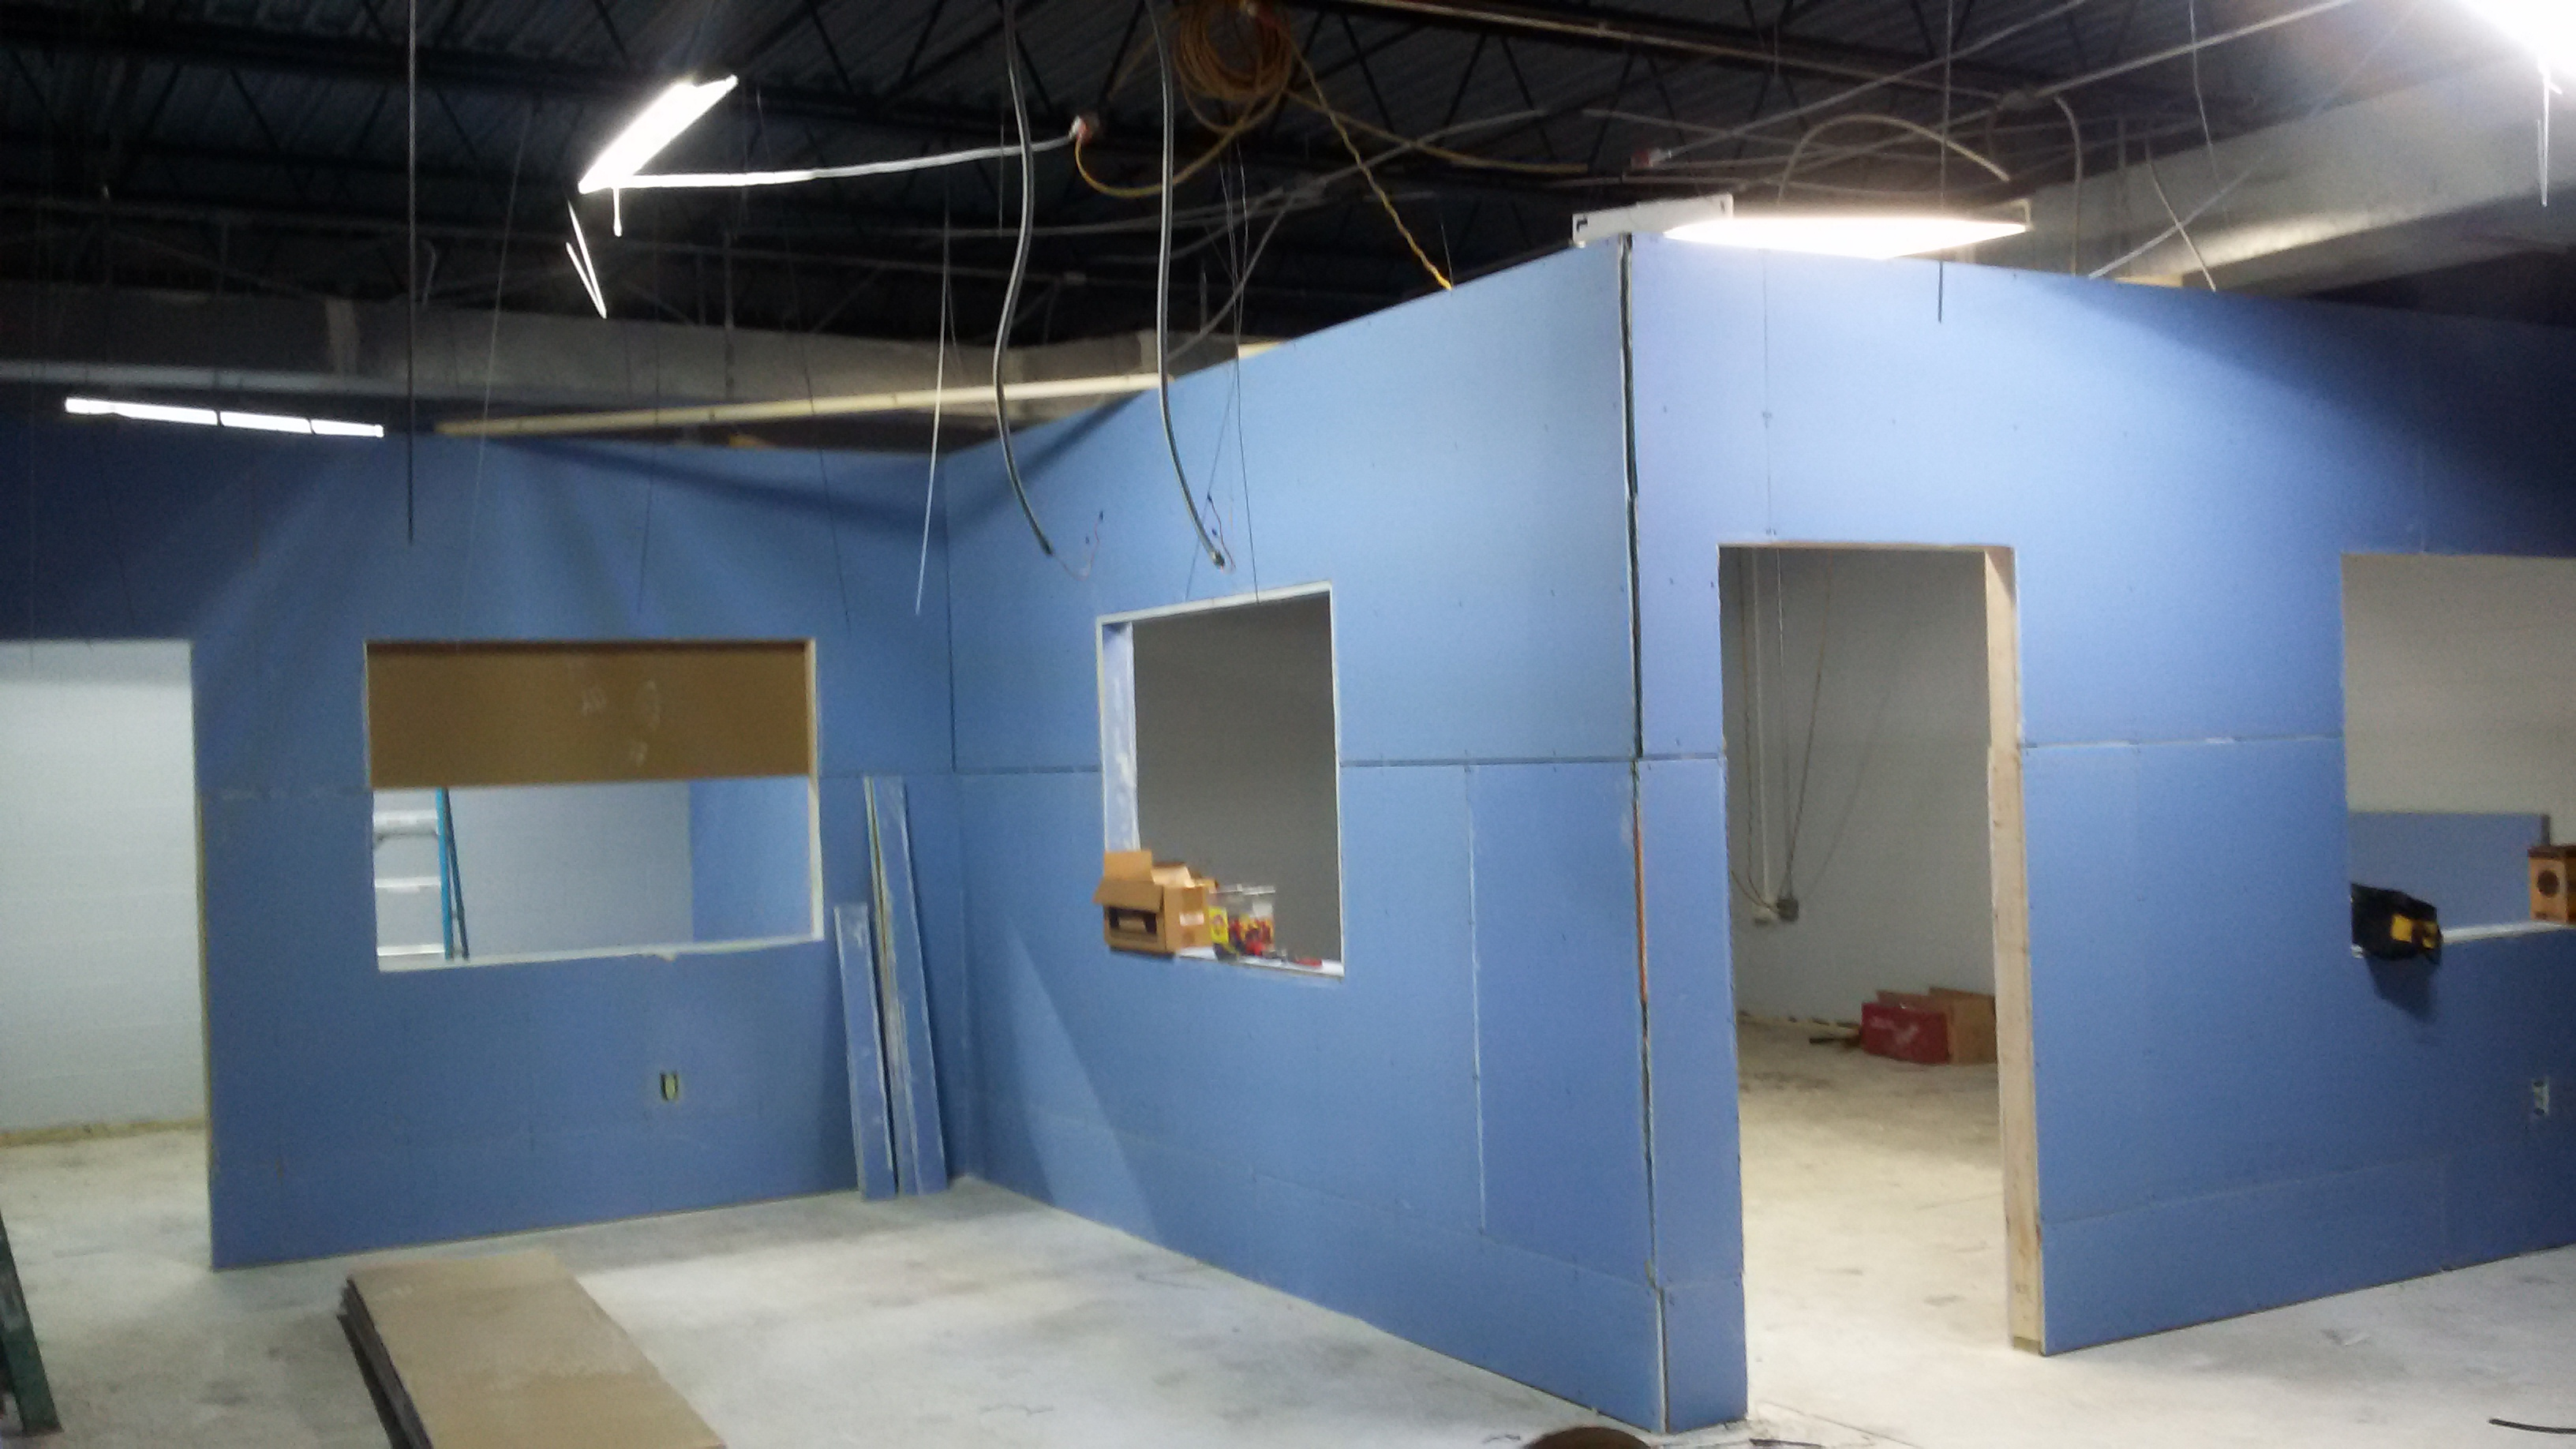 Drywall goes up